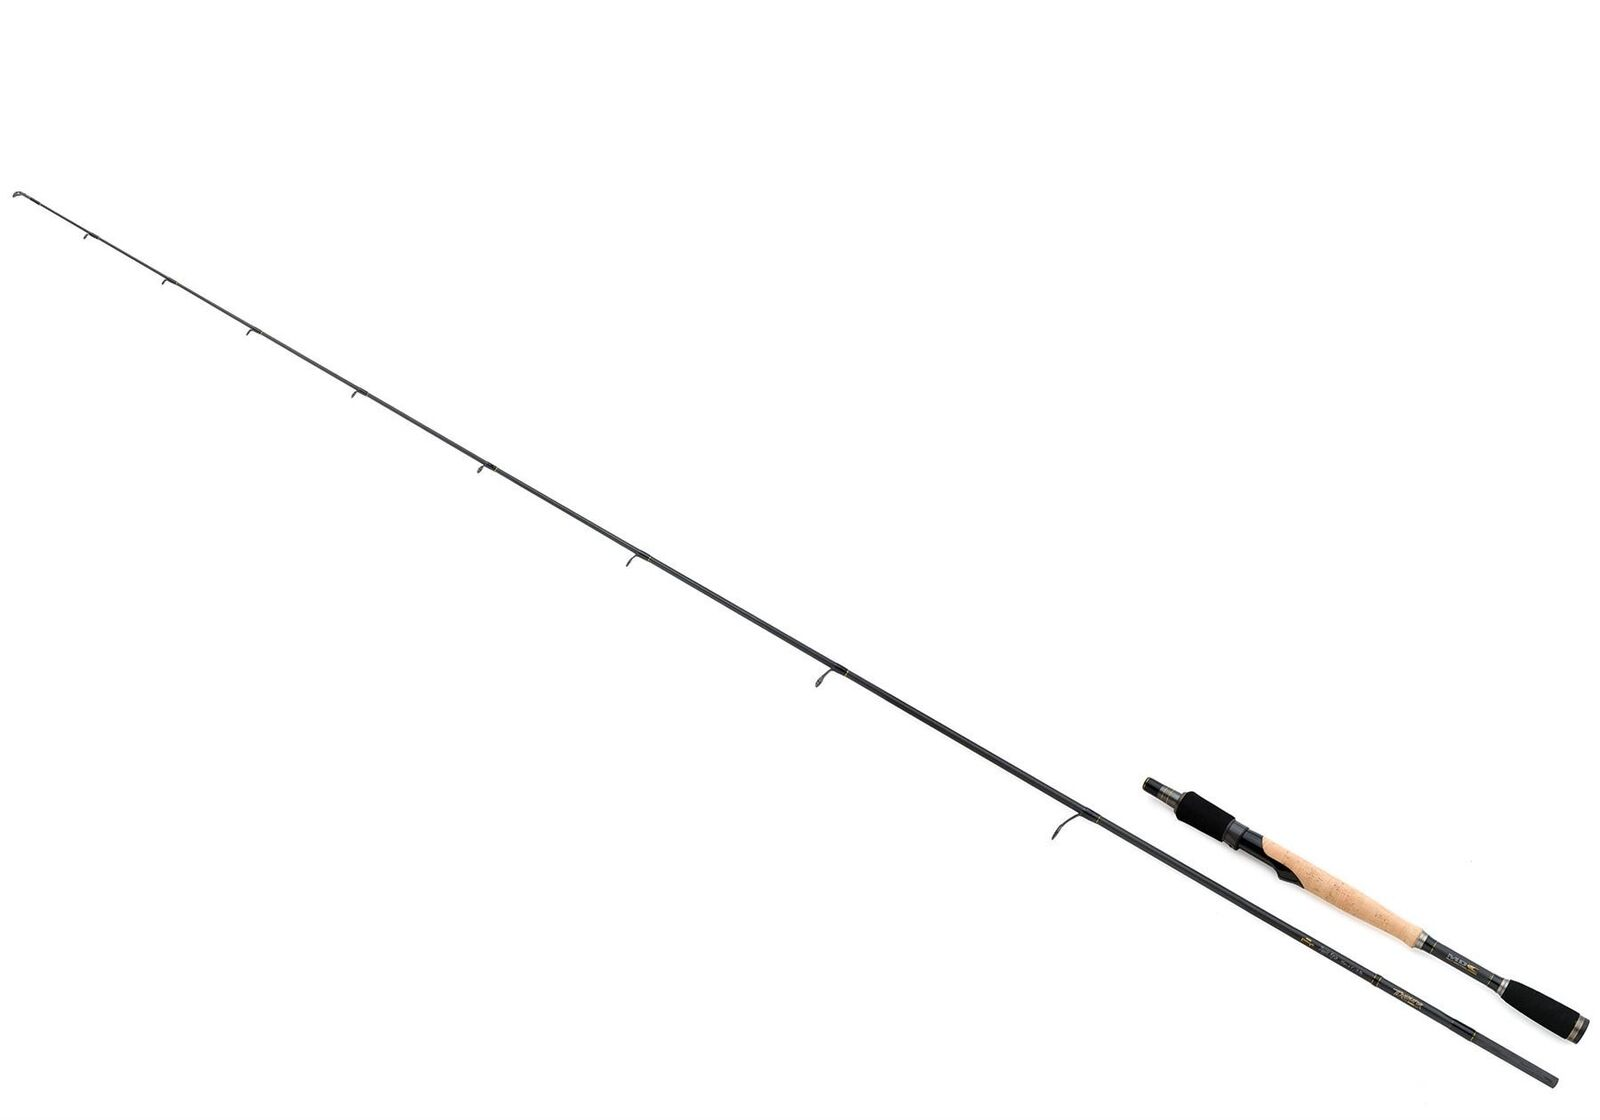 EX Demo 40% OFF-Fox Rage Terminator Pro Jigger Fishing Pole 275cm 15-50g